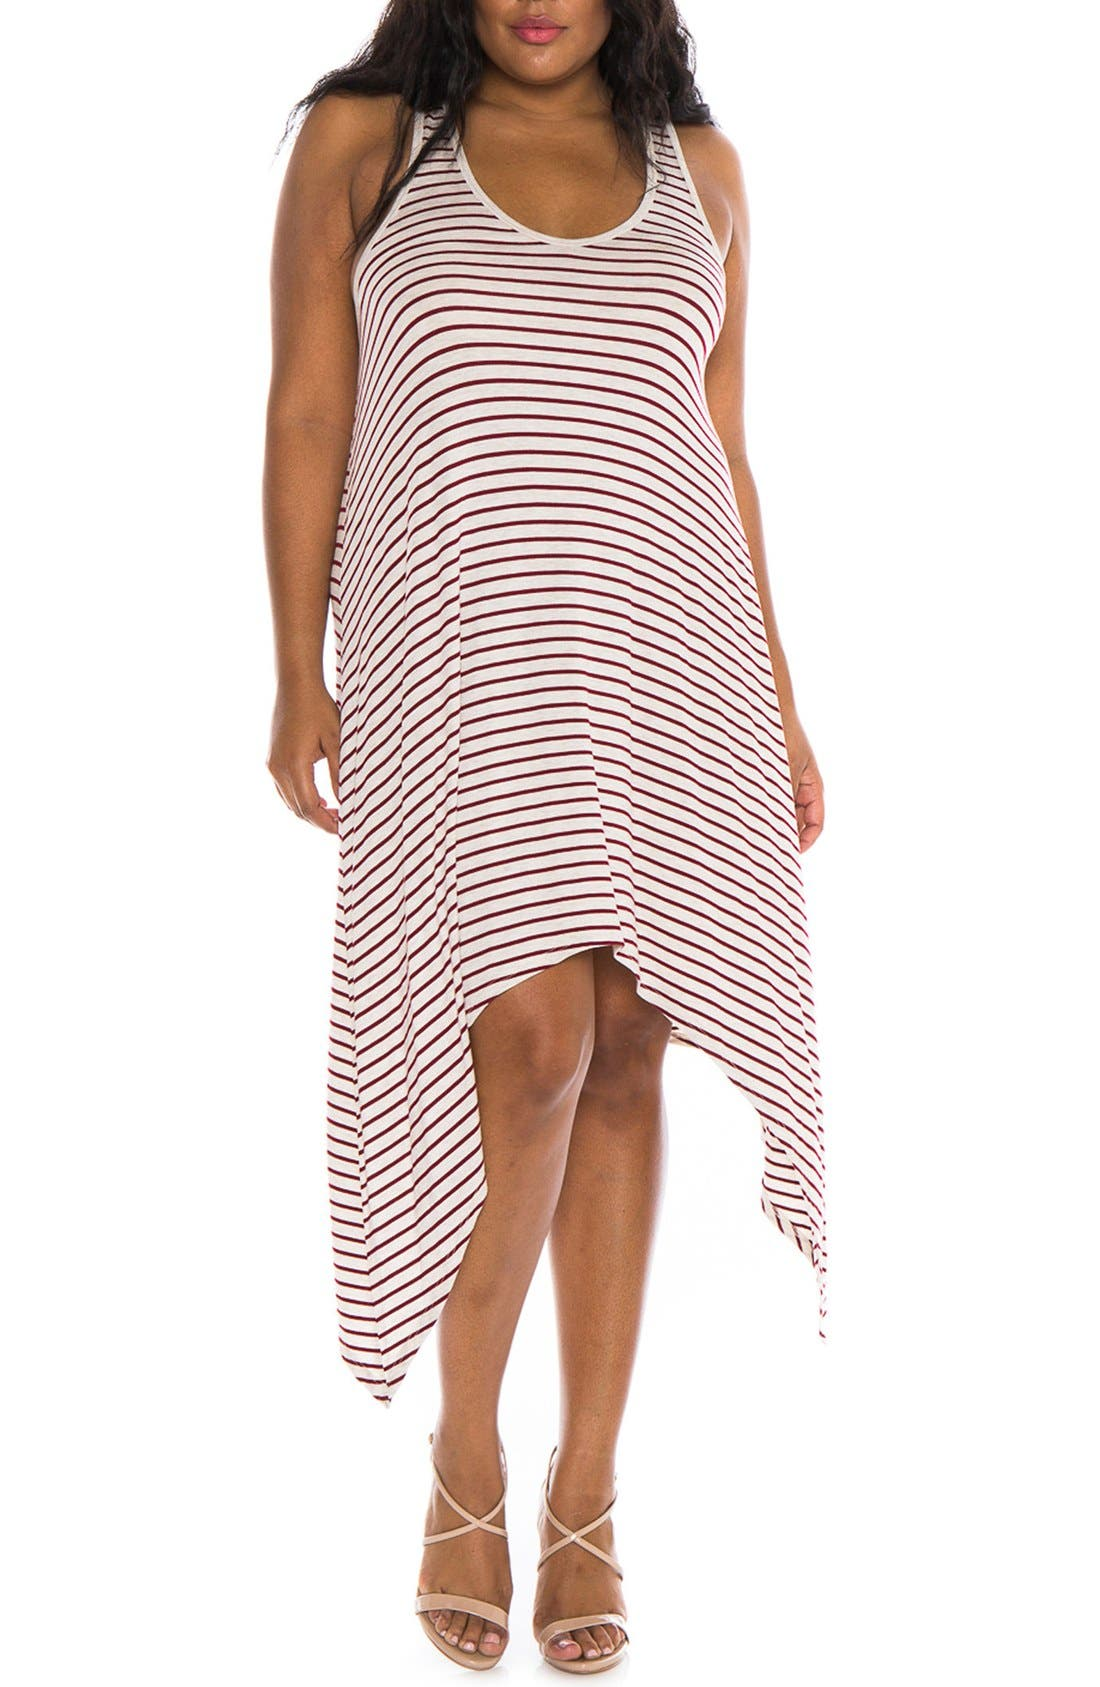 SLINK Jeans Stripe Tank Dress (Plus Size)